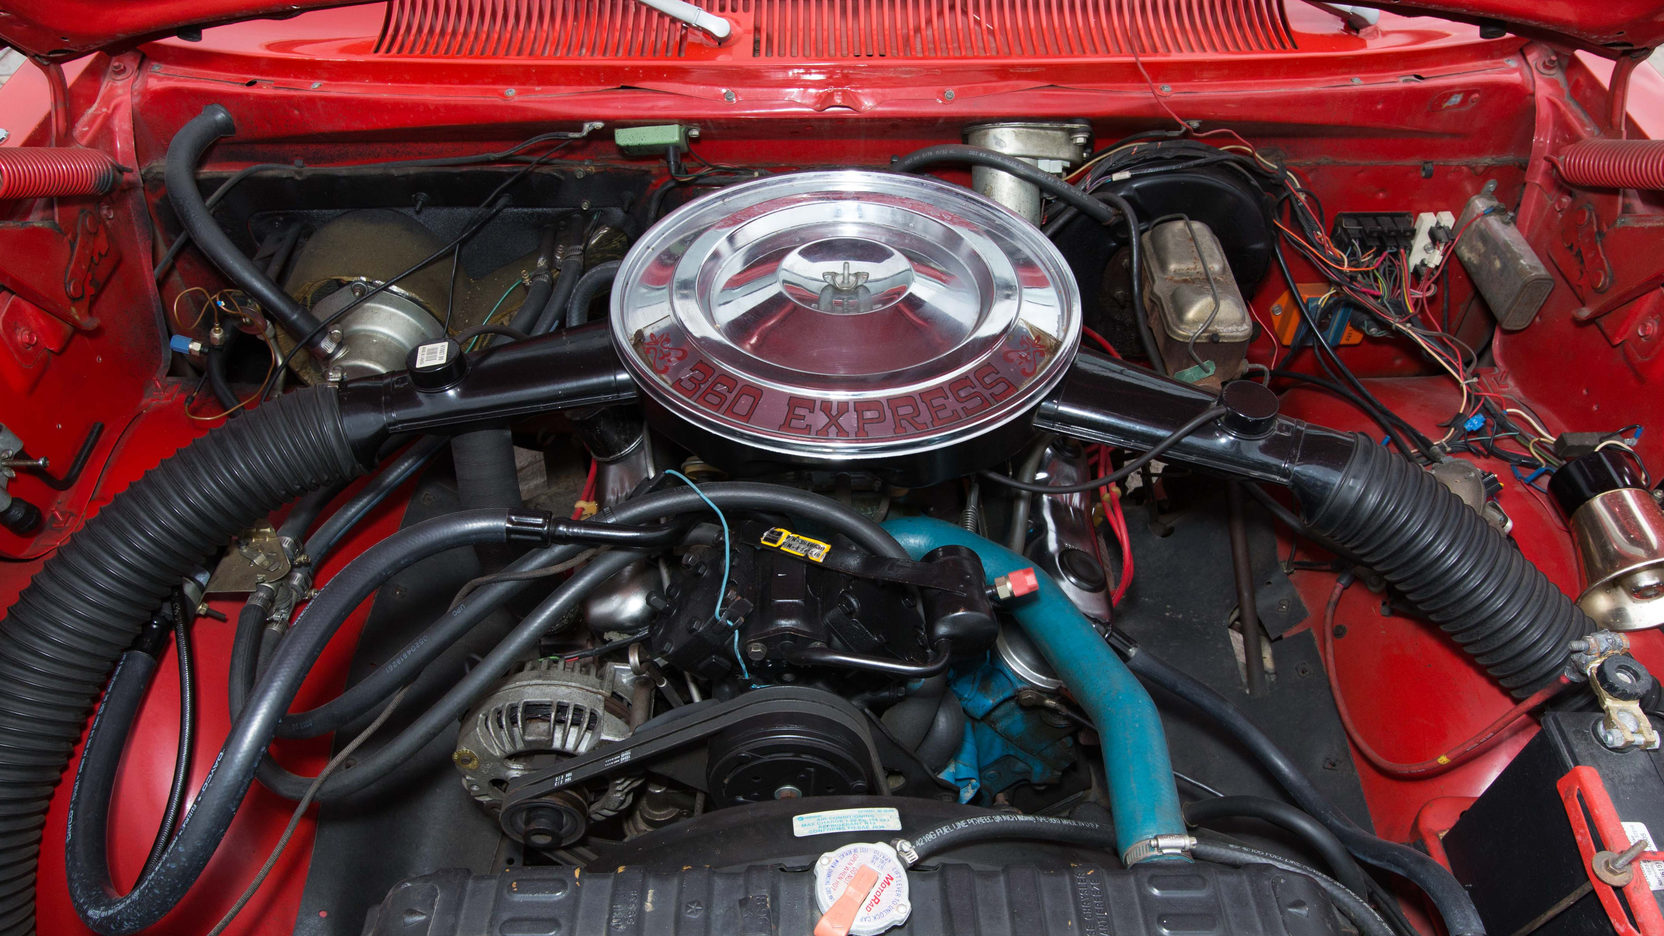 Chrysler 360 small block